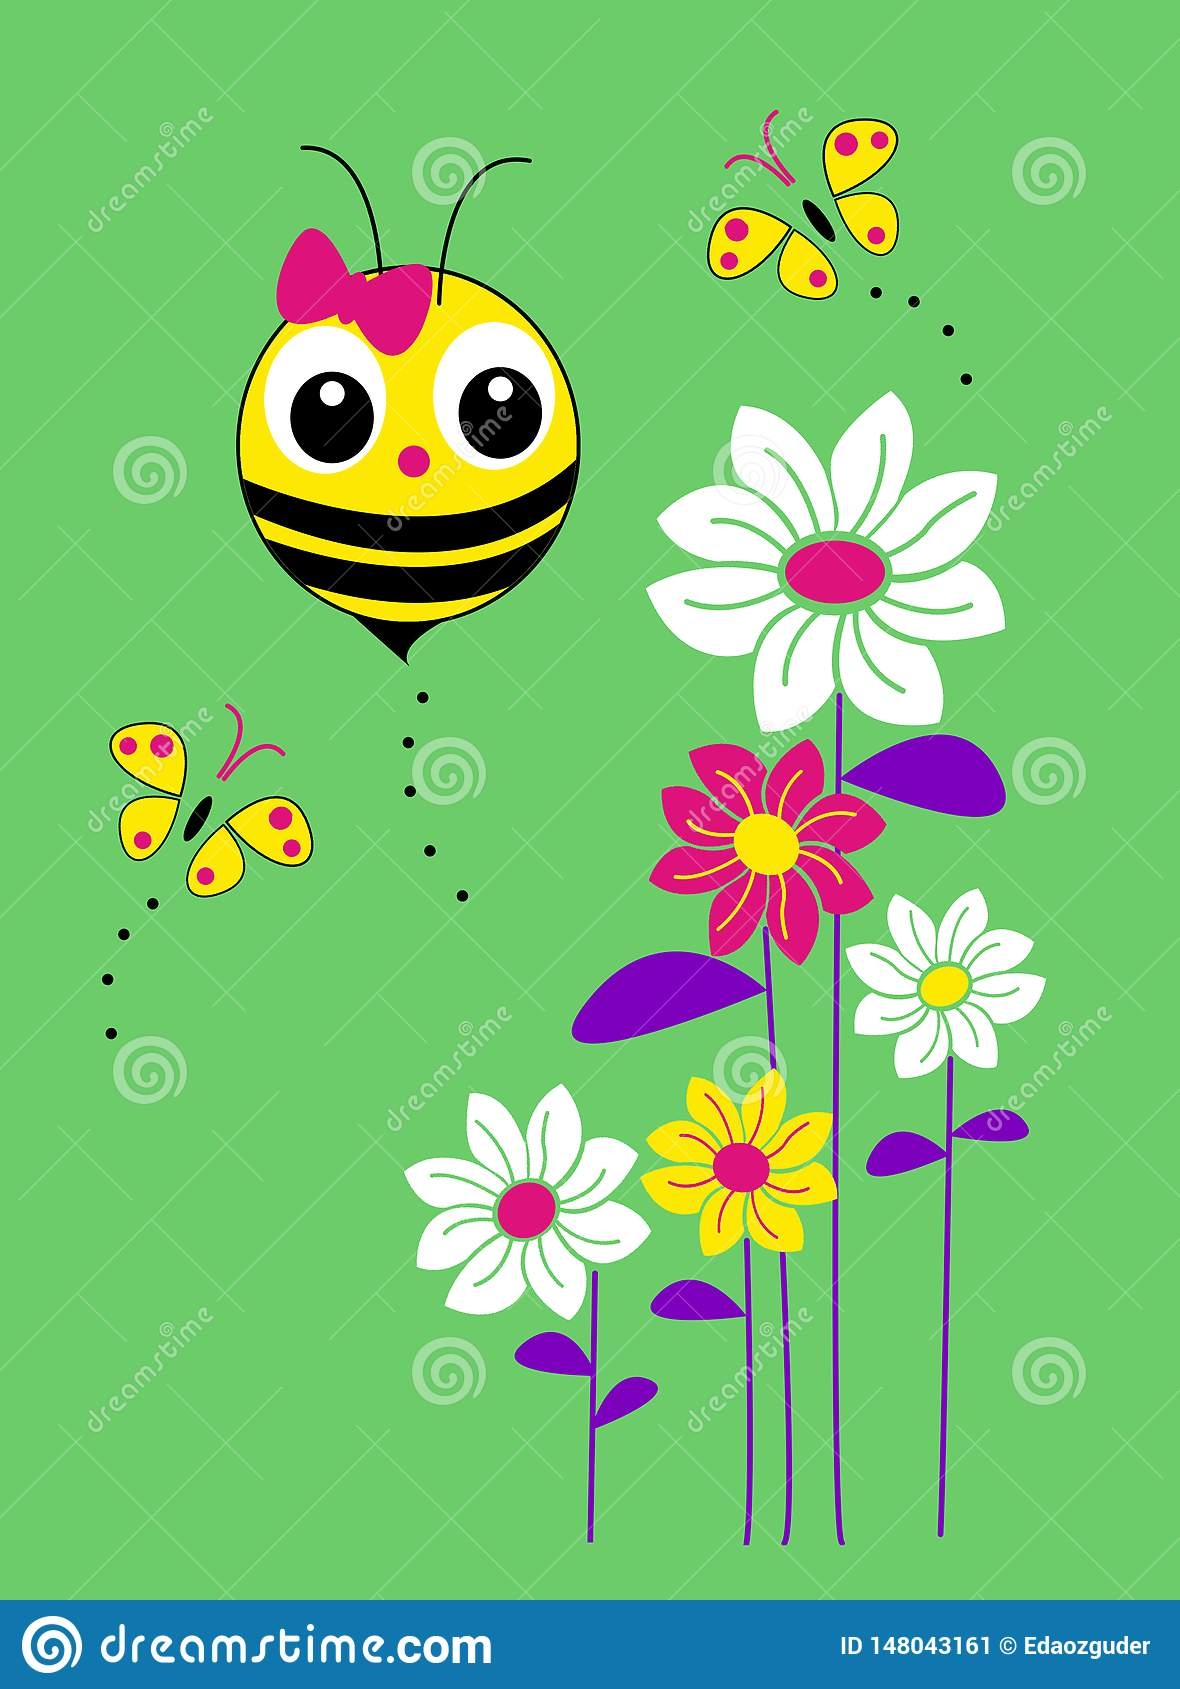 bee, flower, butterfly patterned graphic